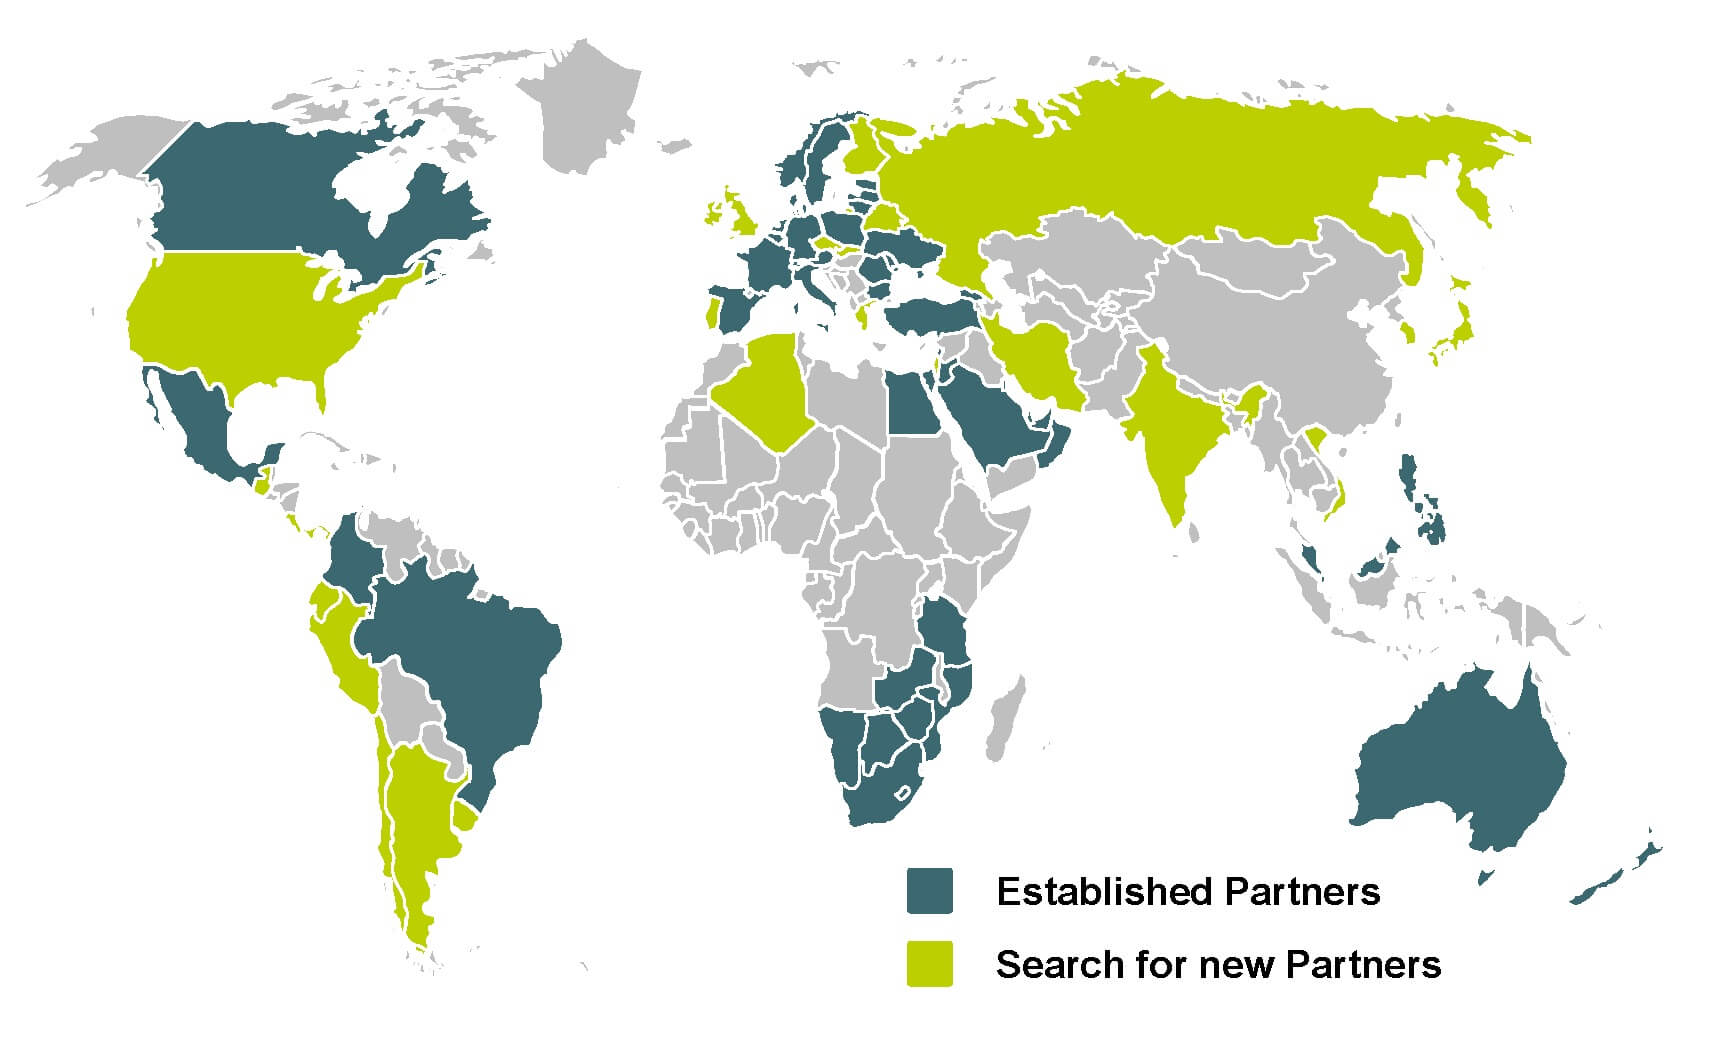 Looking for partners in the following countries